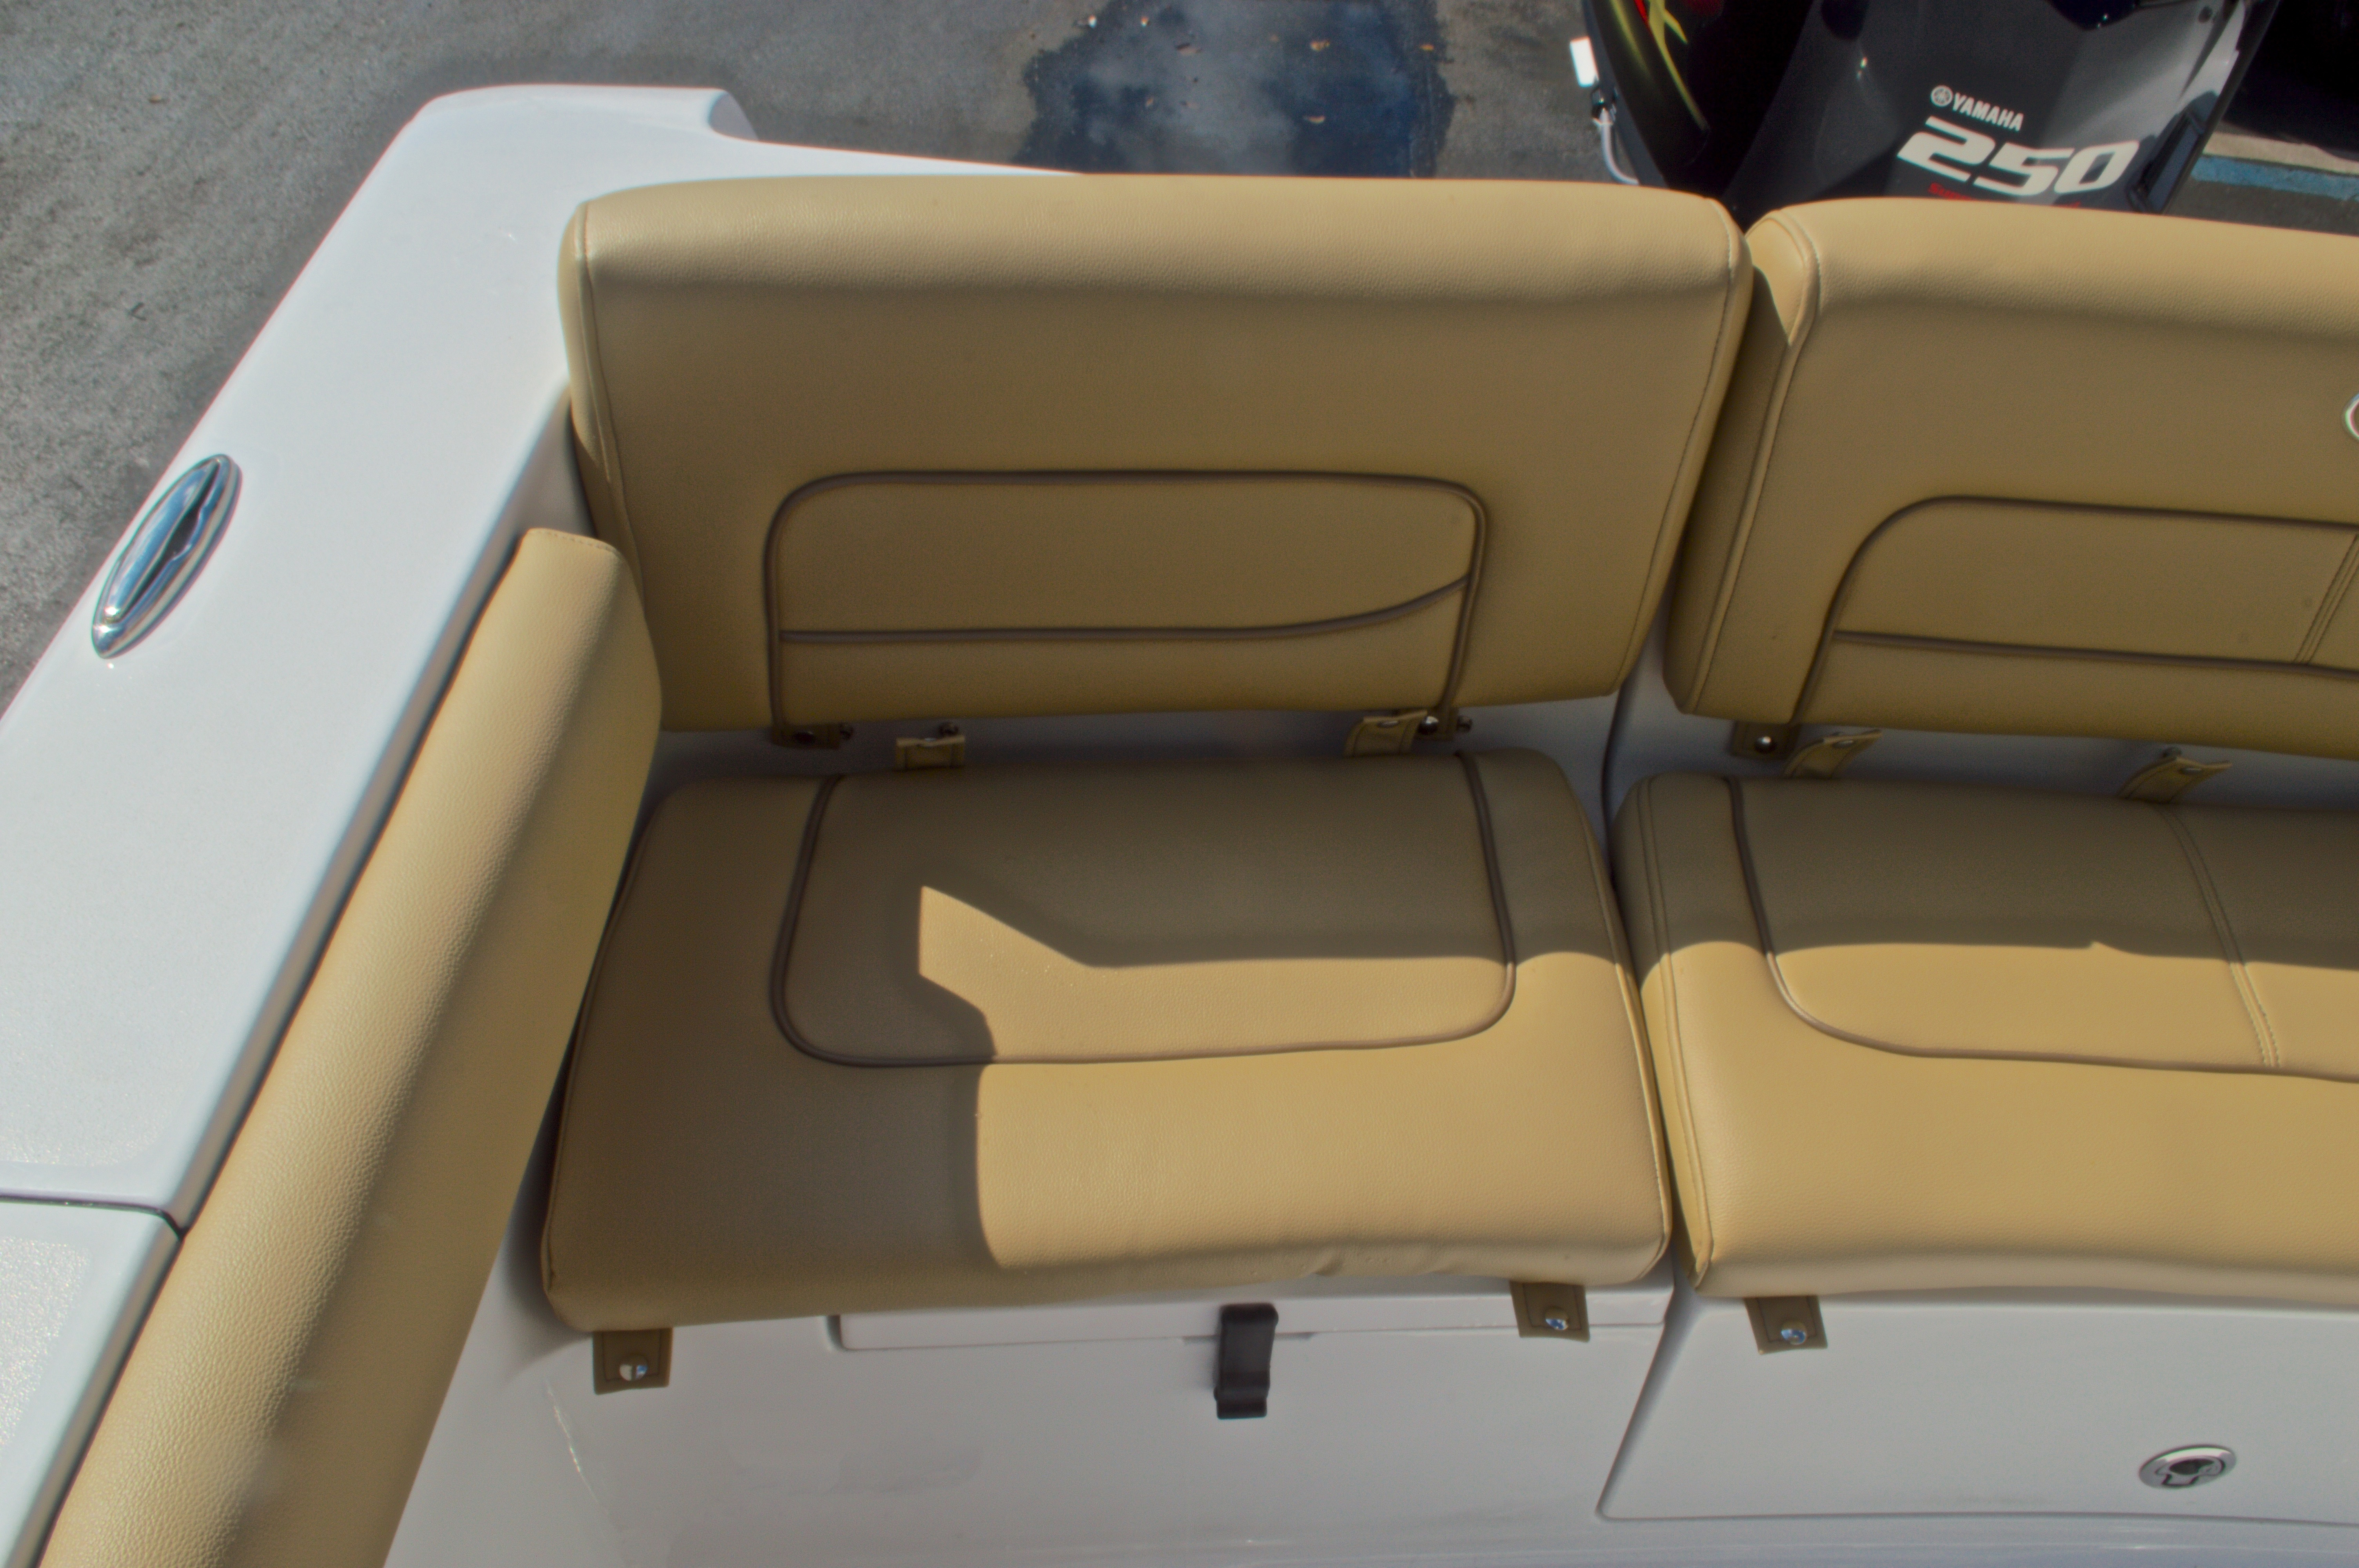 Thumbnail 11 for New 2016 Sportsman Heritage 231 Center Console boat for sale in Vero Beach, FL